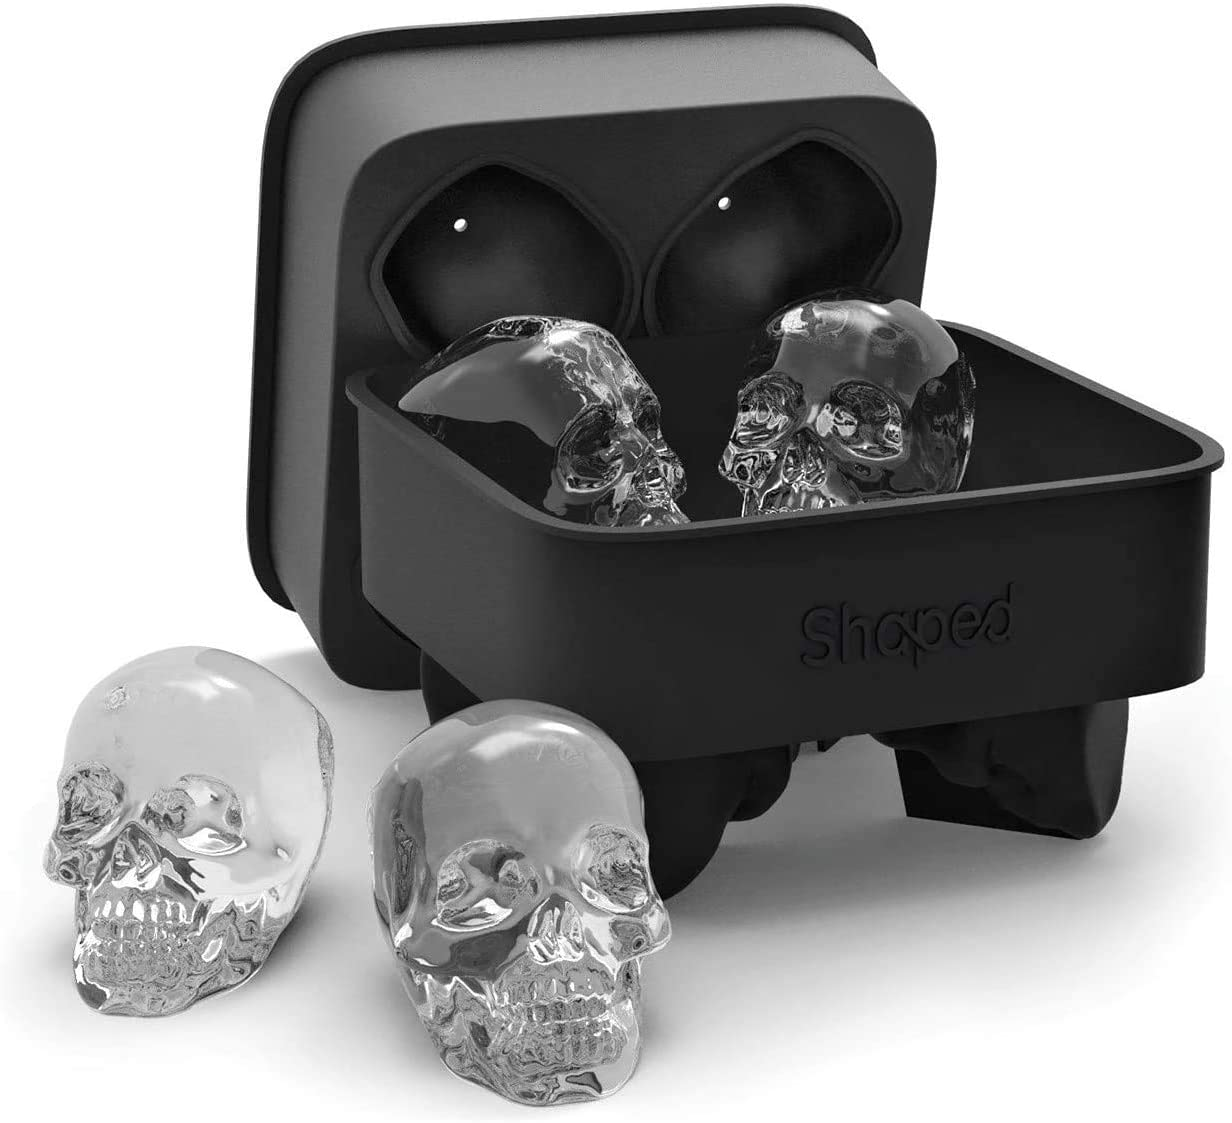 Ice Cube Trays Silicone,ice Cube Molds with Lid For Whiskey and Cocktails, Upgraded 3D Skull Ice Mold Tray with Funnel, Reusable & BPA Free